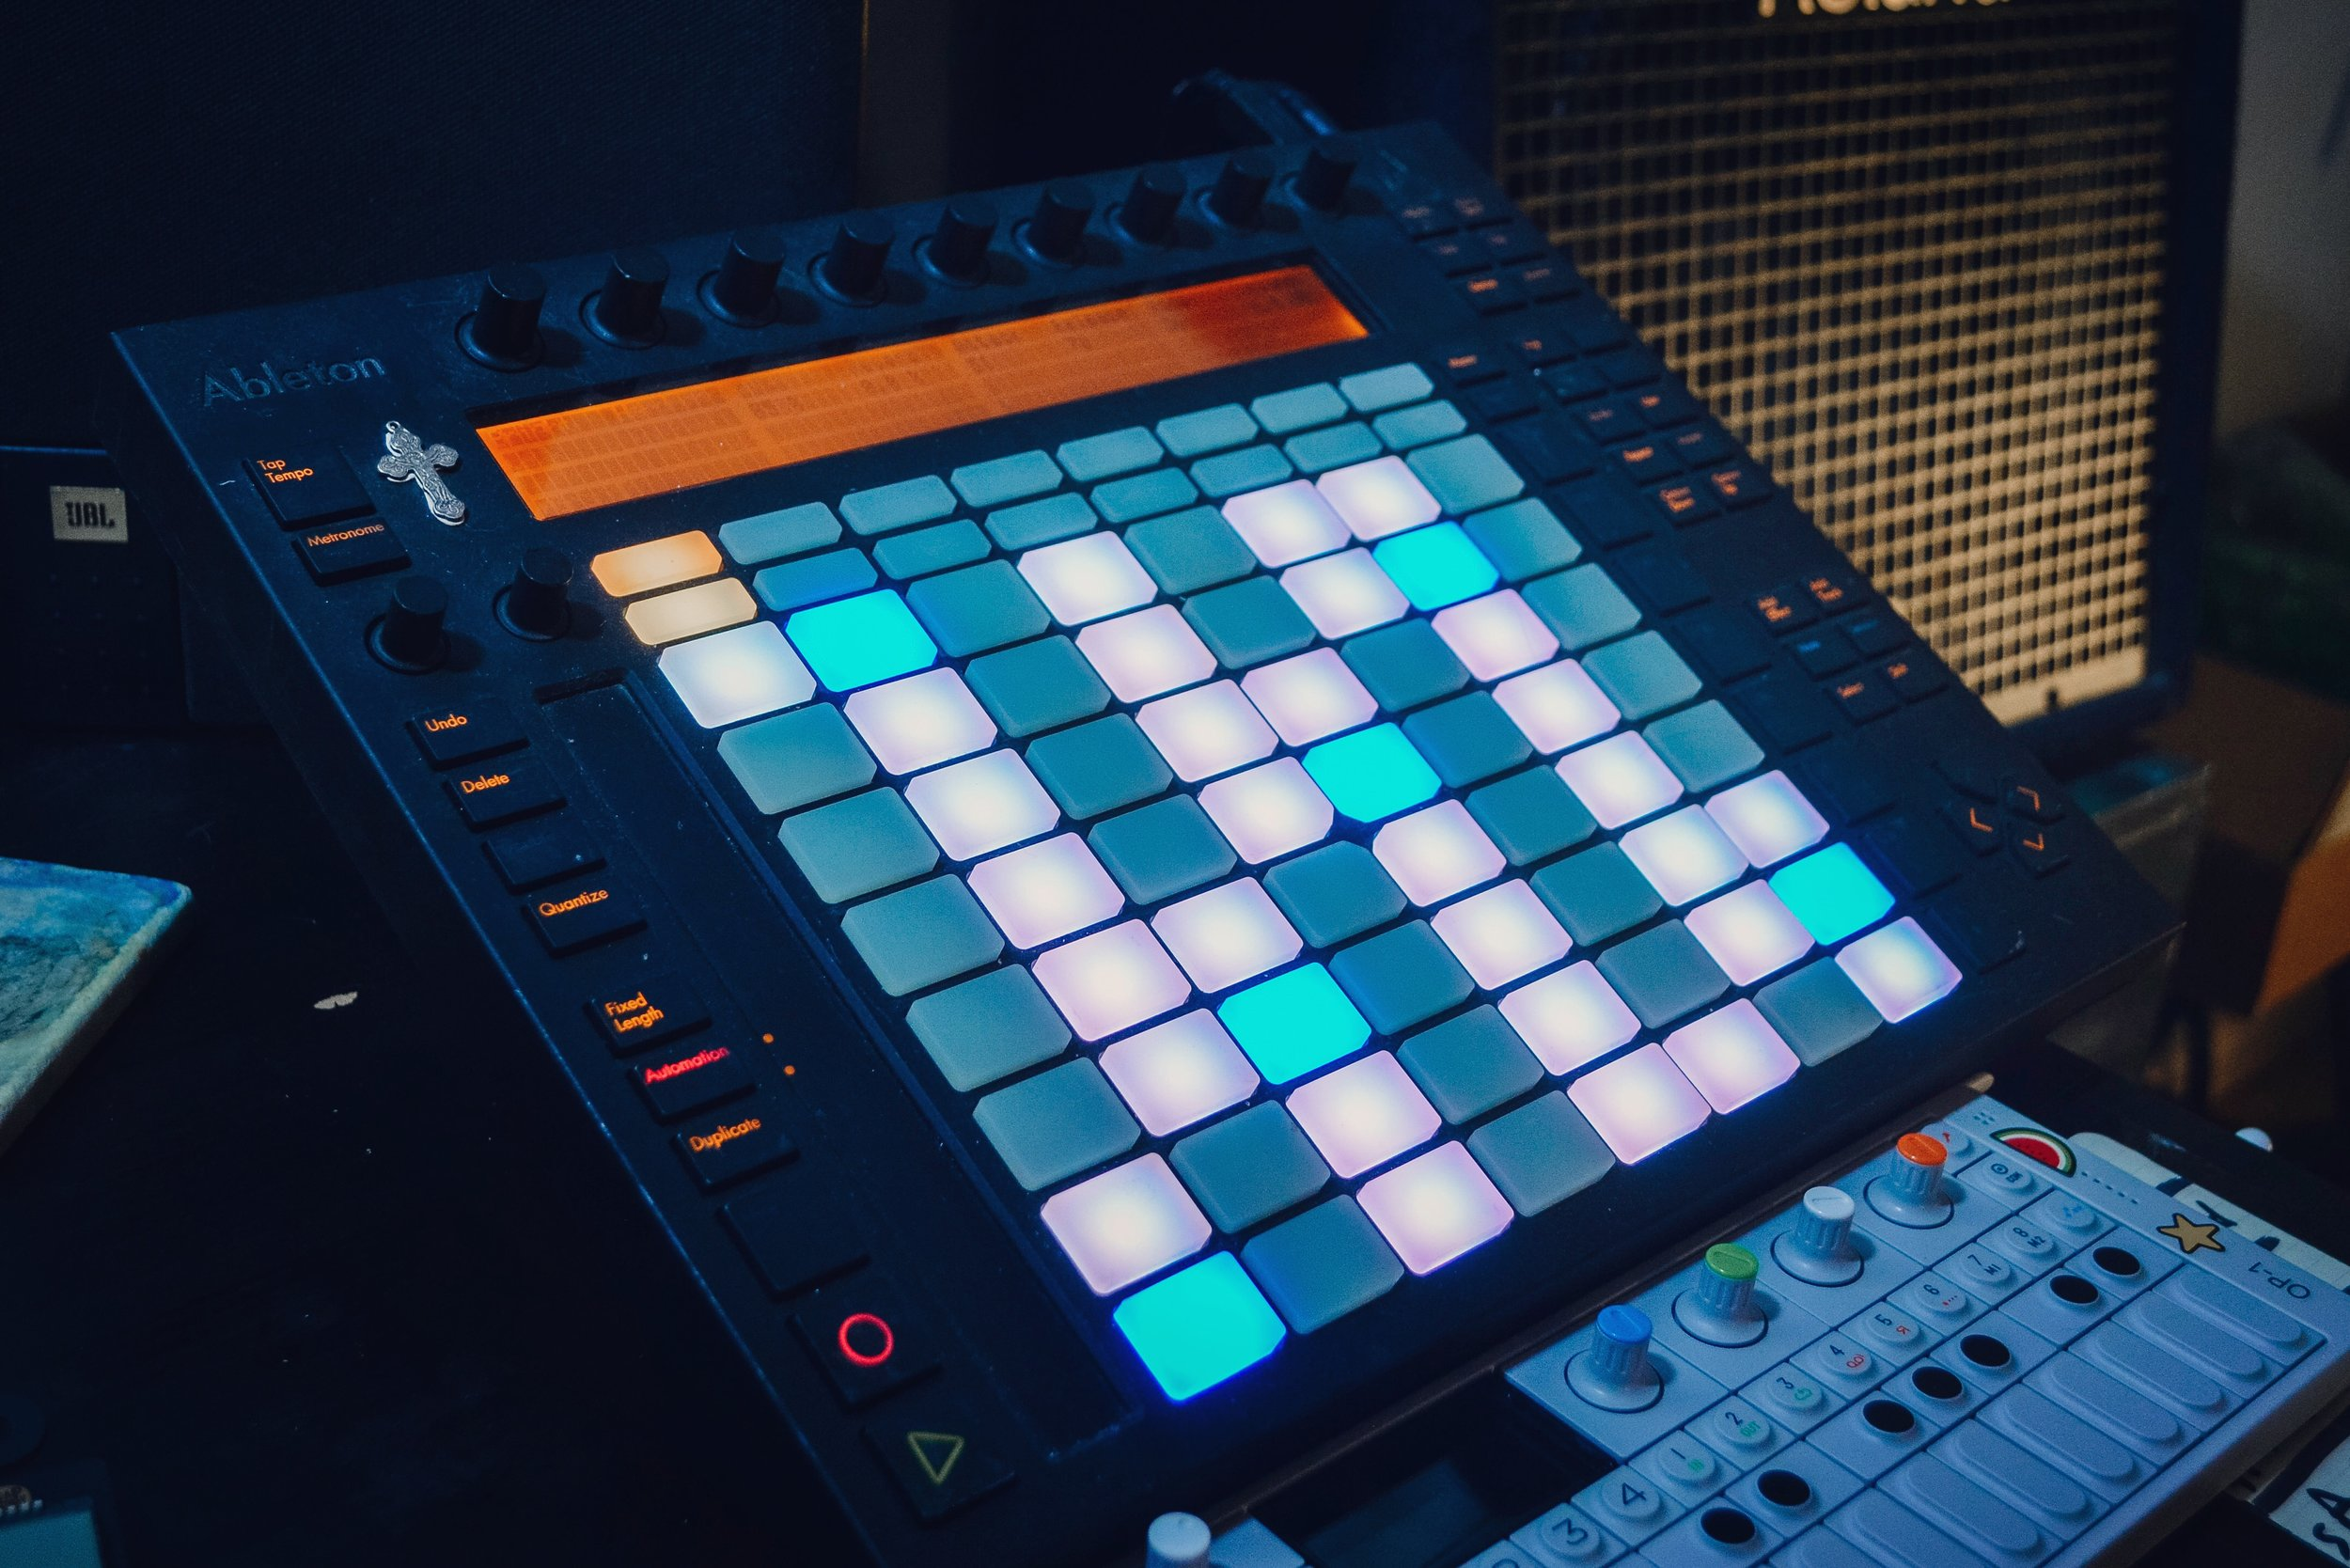 """This is my Ableton Push. - I bought this from Lucas Winkler a couple years ago. If I'm being honest, I am not super proficient with this thing. I'll go through brief seasons of committing to learn the ins and outs of Push, but it never lasts very long. It ends up just being a very user-friendly MIDI controller for me, since I'm pretty bad with a traditional keyboard.This picture of my Push is more just representative of Ableton Live. I love Ableton, and I think it plays a big part in shaping the songs I write. It's a big part of my """"rig."""" It influenced the arrangements of both """"Indiana"""" and """"Little Flock."""" .Some of my favorite songs on the new record started as 10-20 second guitar riffs recorded into Ableton. I pushed and manipulated those snippets in multiple directions to see what felt right. These kinds of arrangements always turn out different than I would have expected if I wrote them the"""